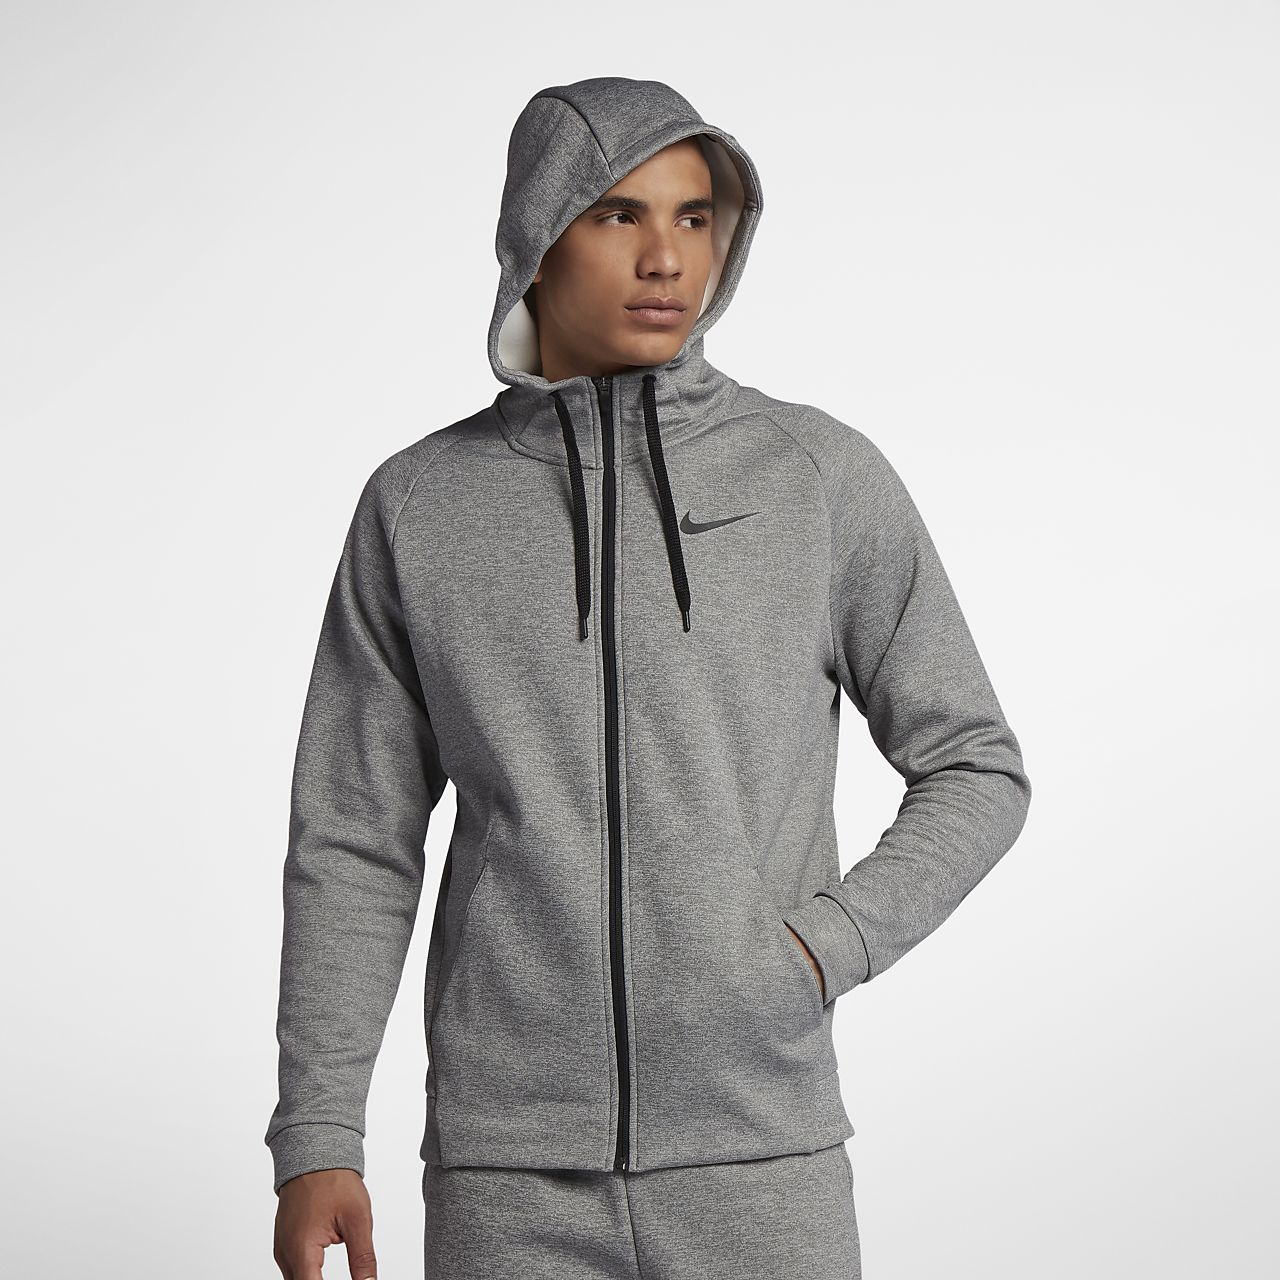 d5bd9b9a89e3 Nike Dri-FIT Therma Men s Full-Zip Training Hoodie. Nike.com NO